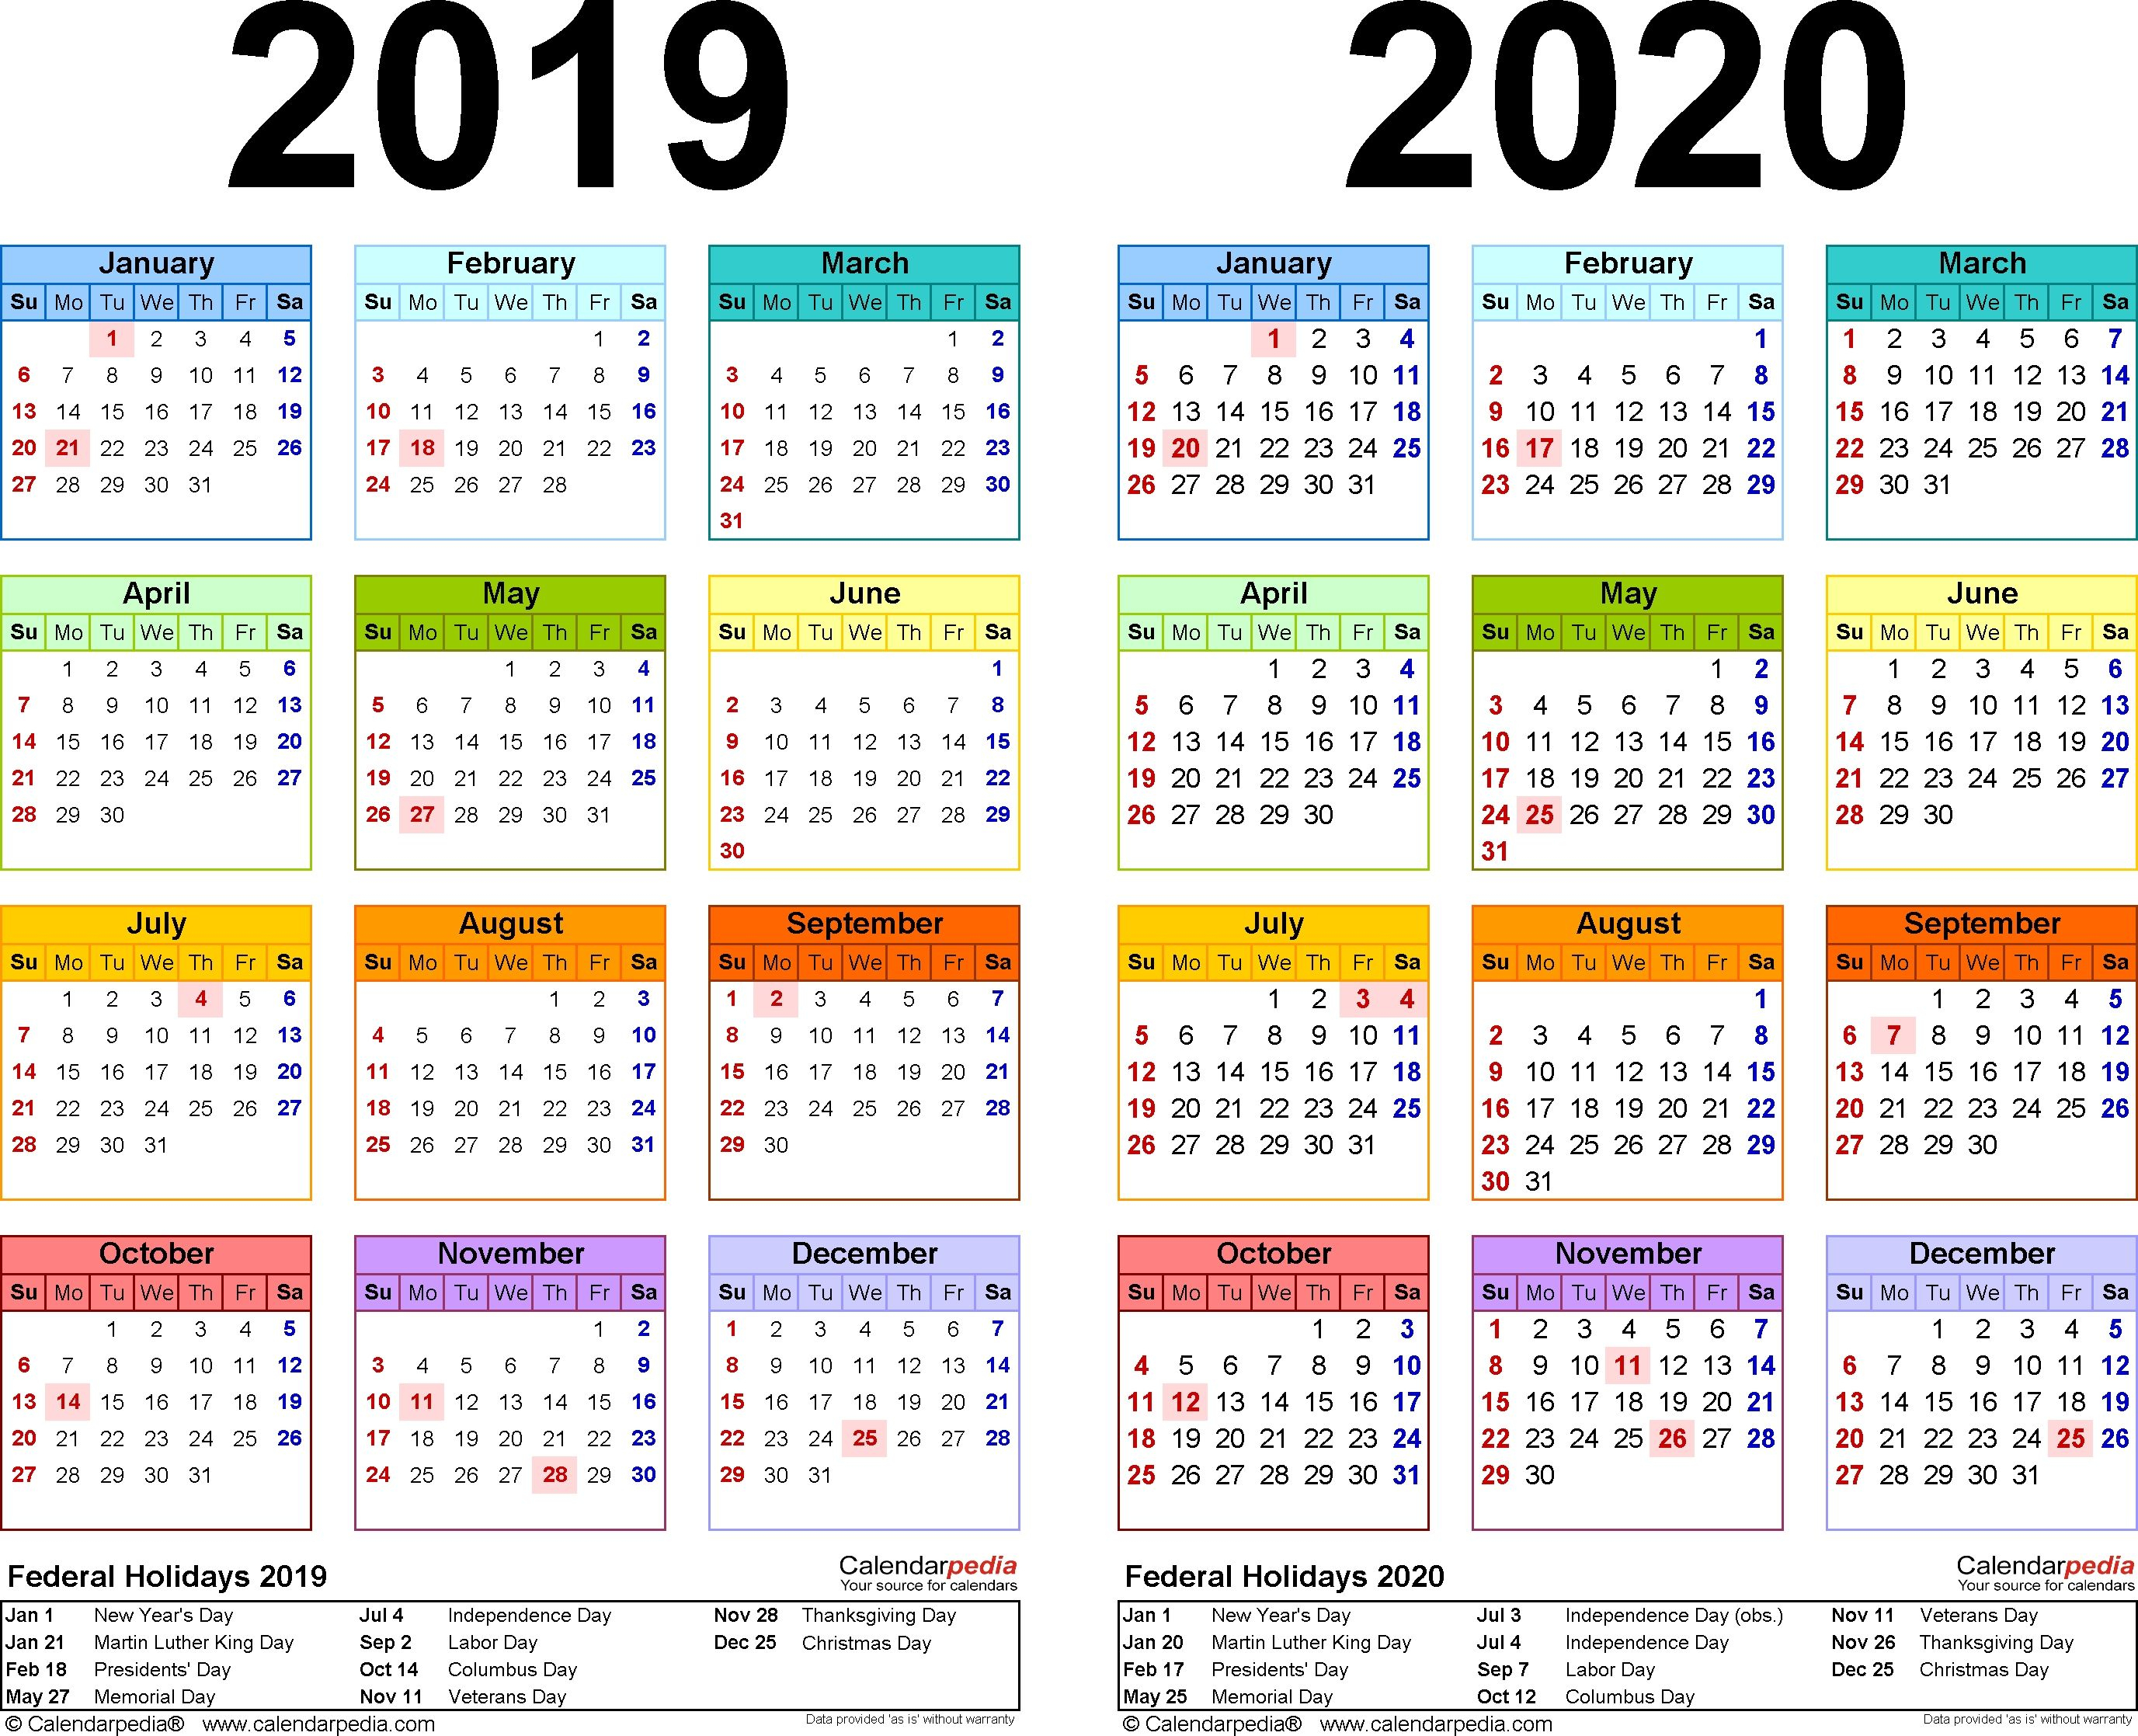 2019-2020 Calendar - Free Printable Two-Year Excel Calendars 2020 in 2020 Free Printable Emploee Calendars